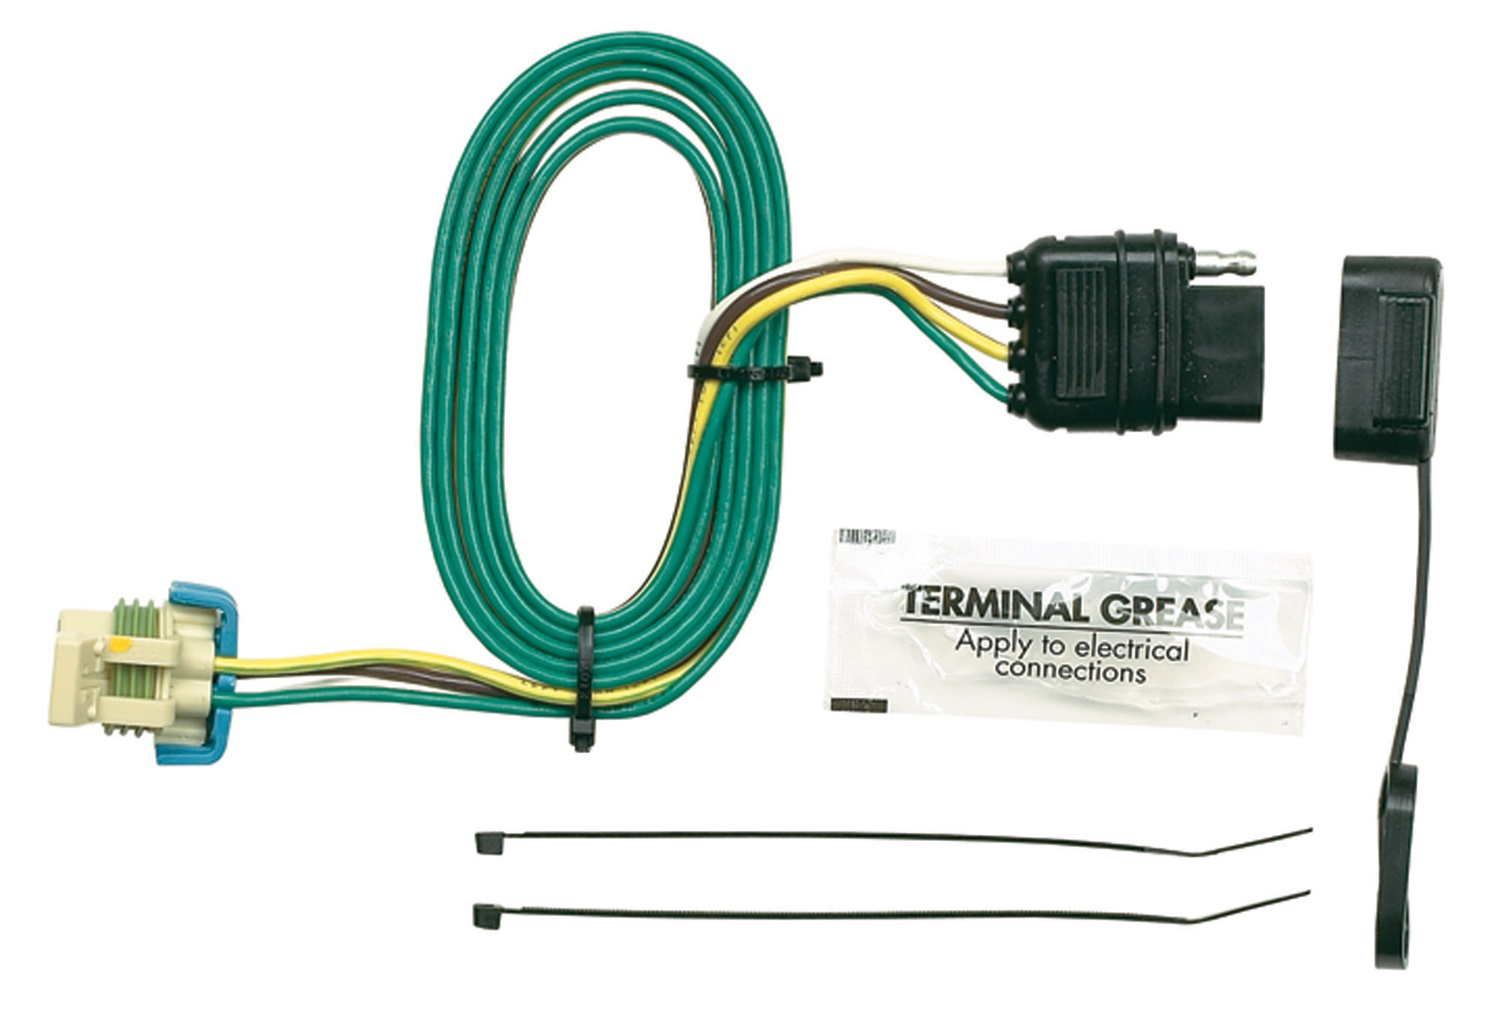 Dodge Journey Door Wiring Harness Kit Diagrams For Dummies 2009 Nitro Trailer Ford Fusion Abs Module Towing Capacity